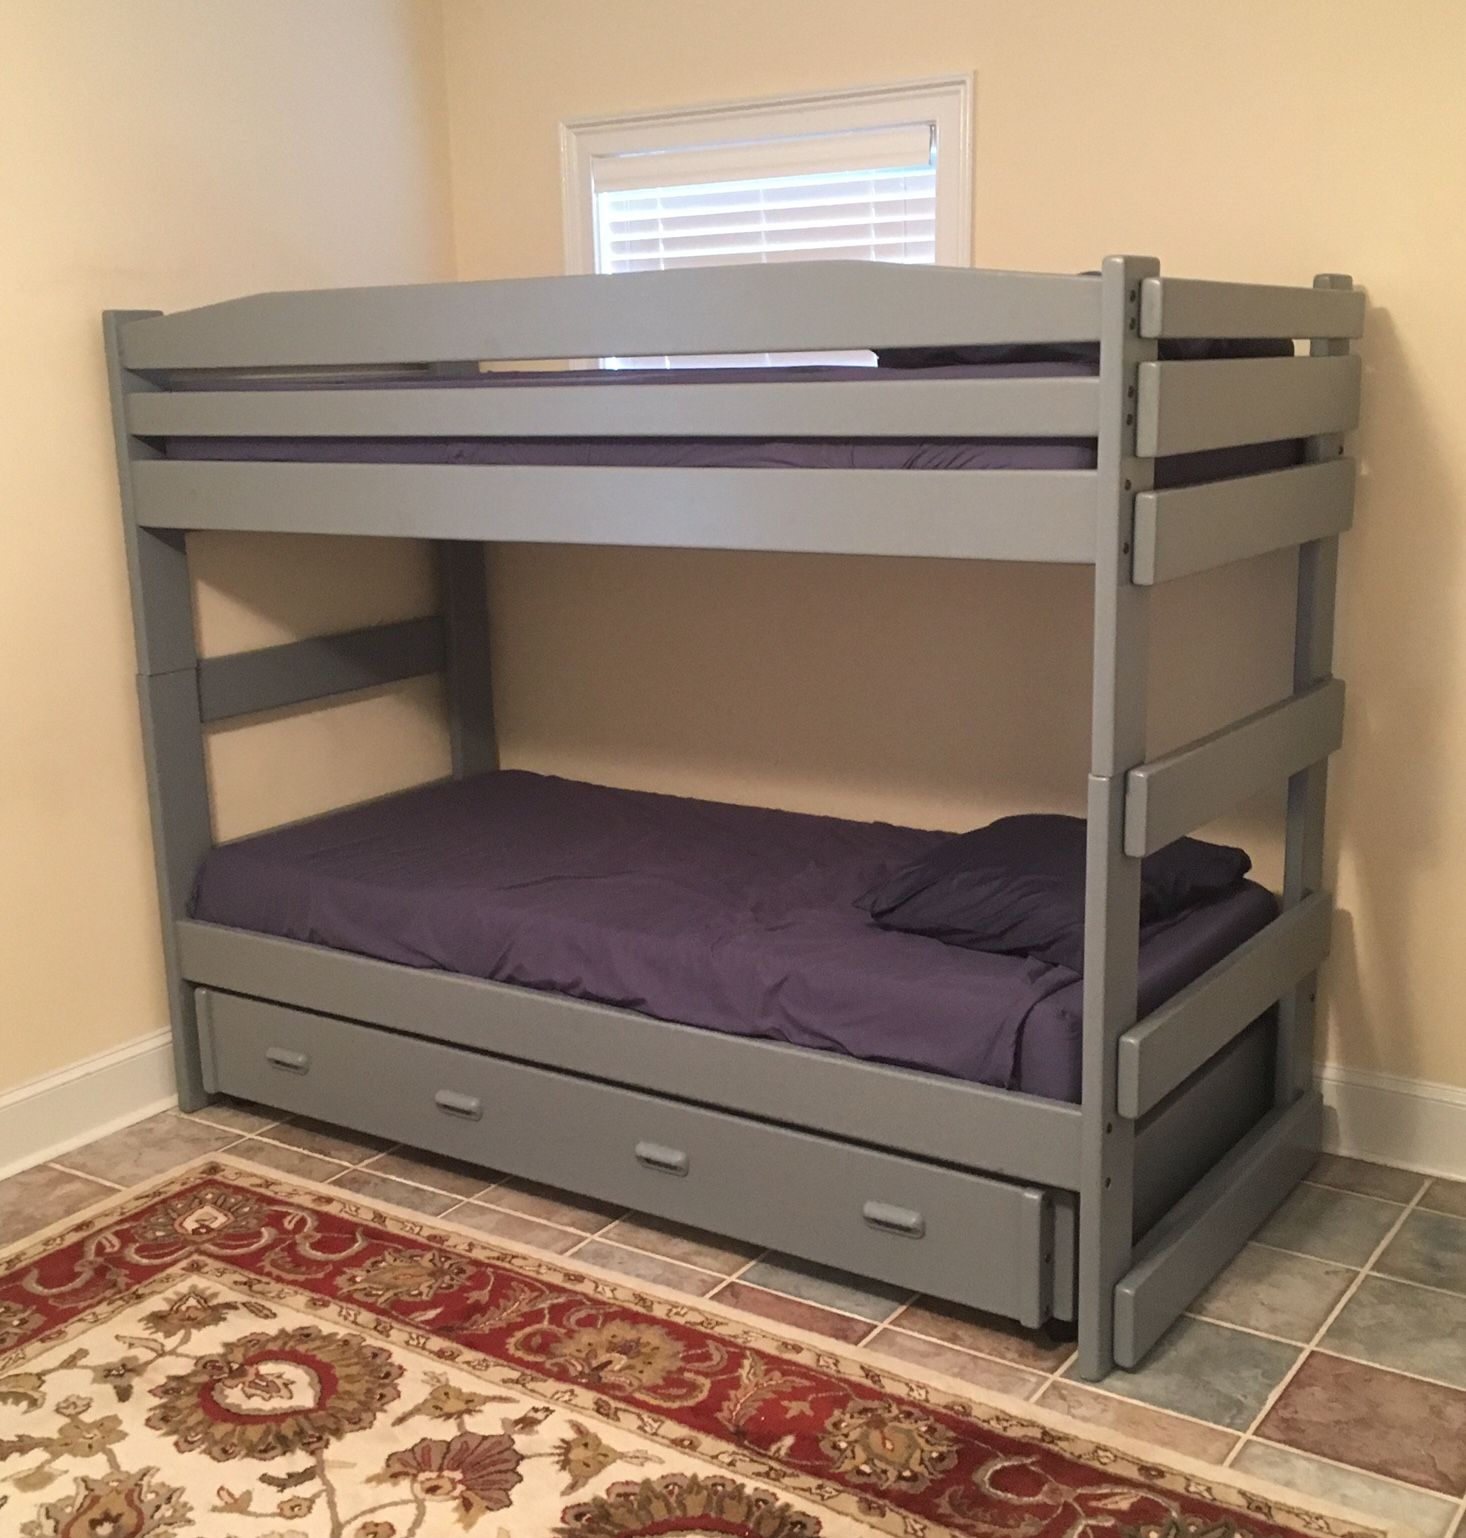 Triple Bunk Bed Sleeps Three In The Space Of One Bed Stackable Twin